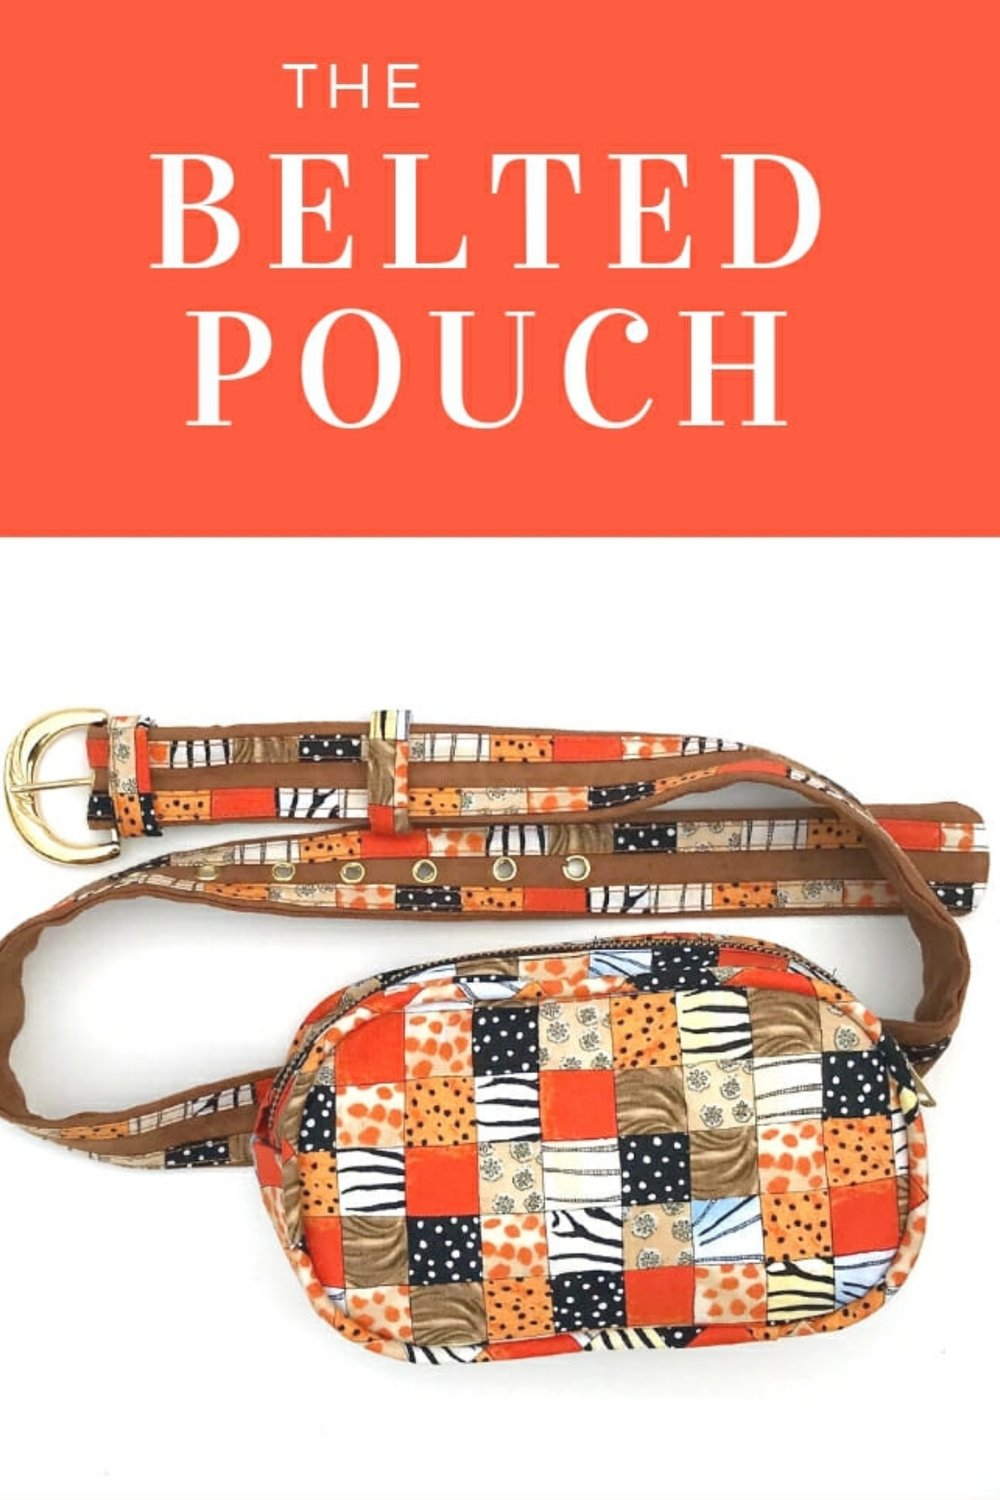 Belted Pouch from So Sew Easy